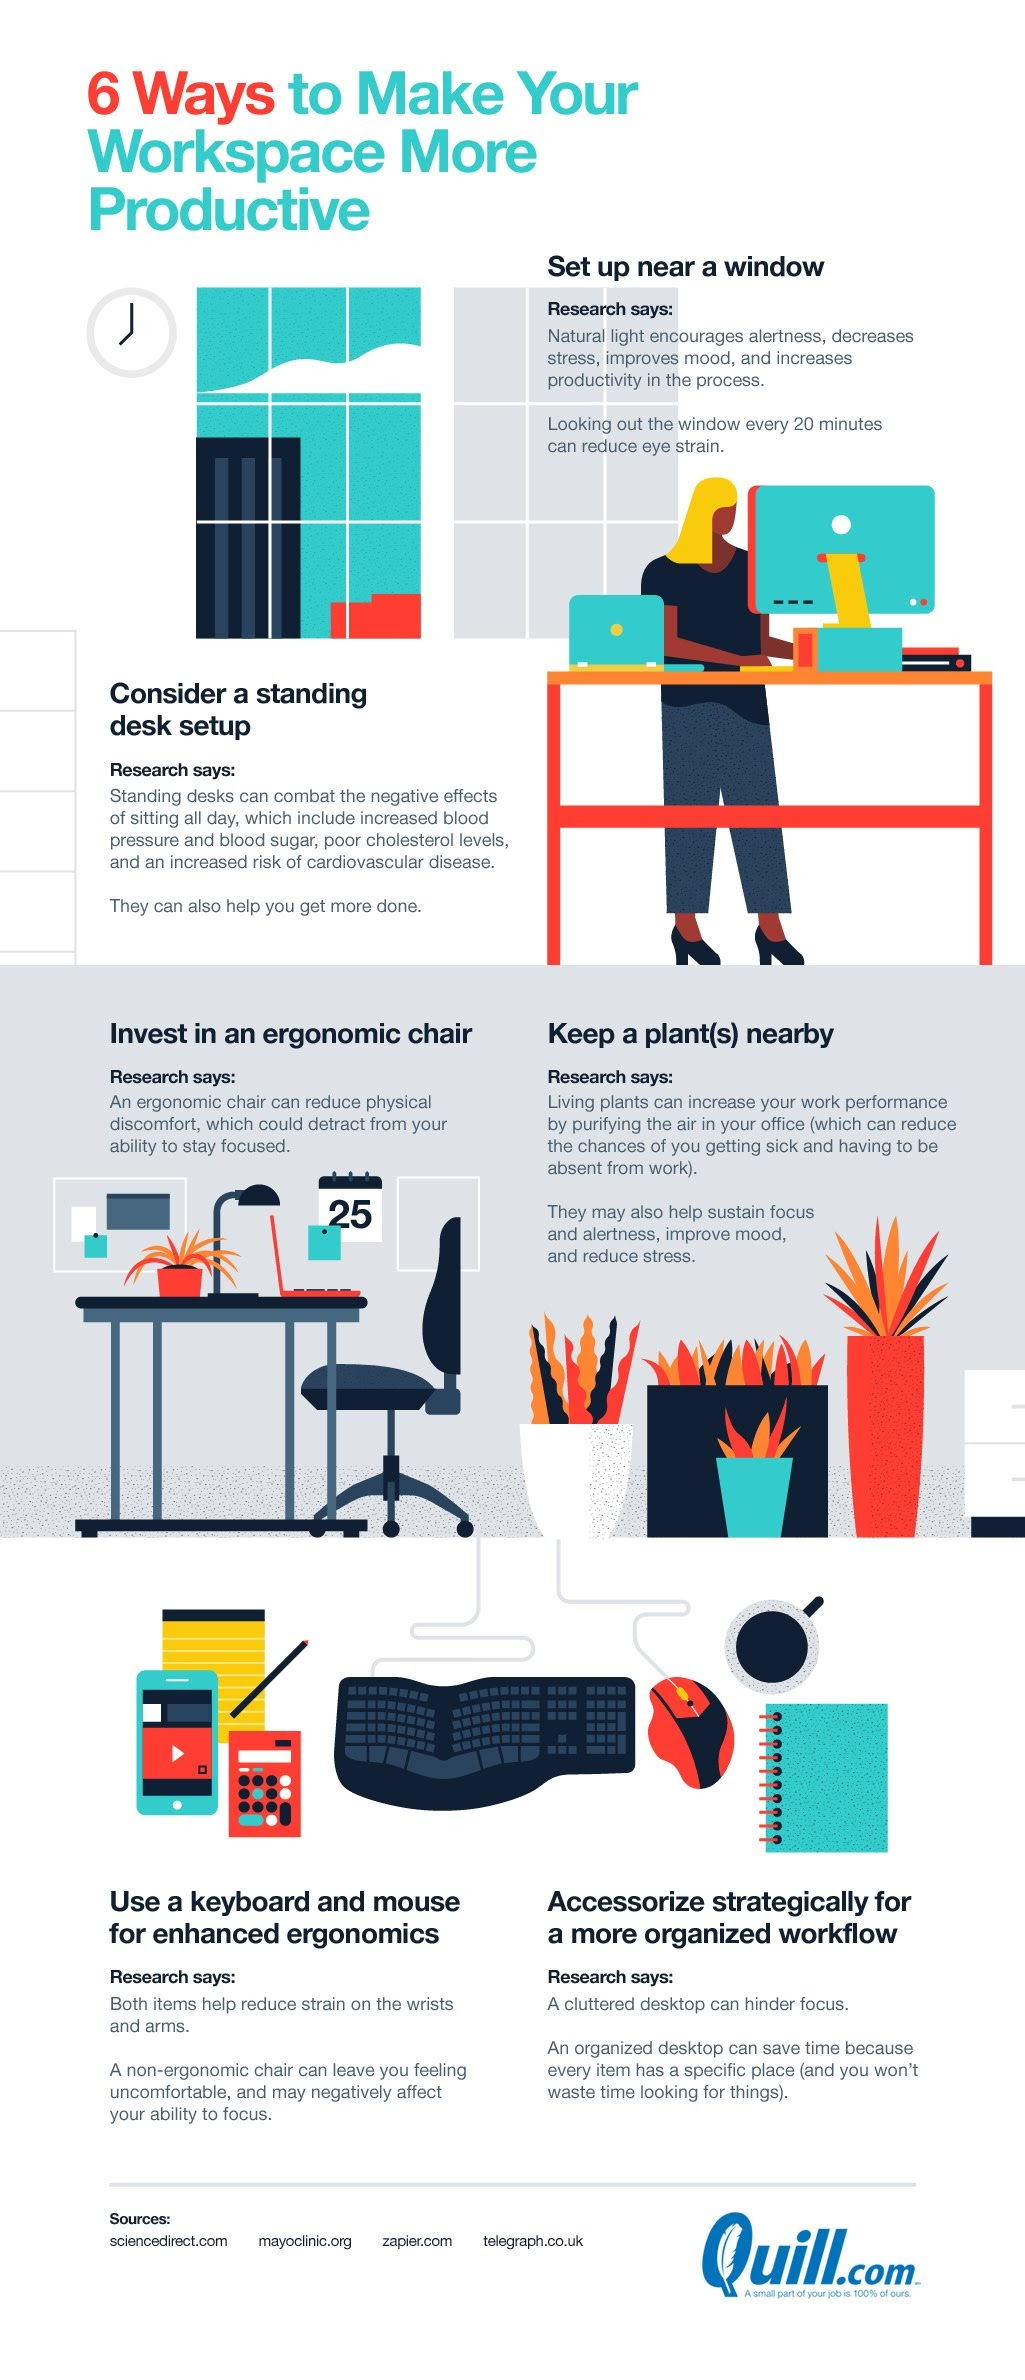 What is the best desk setup for productivity? #infographic